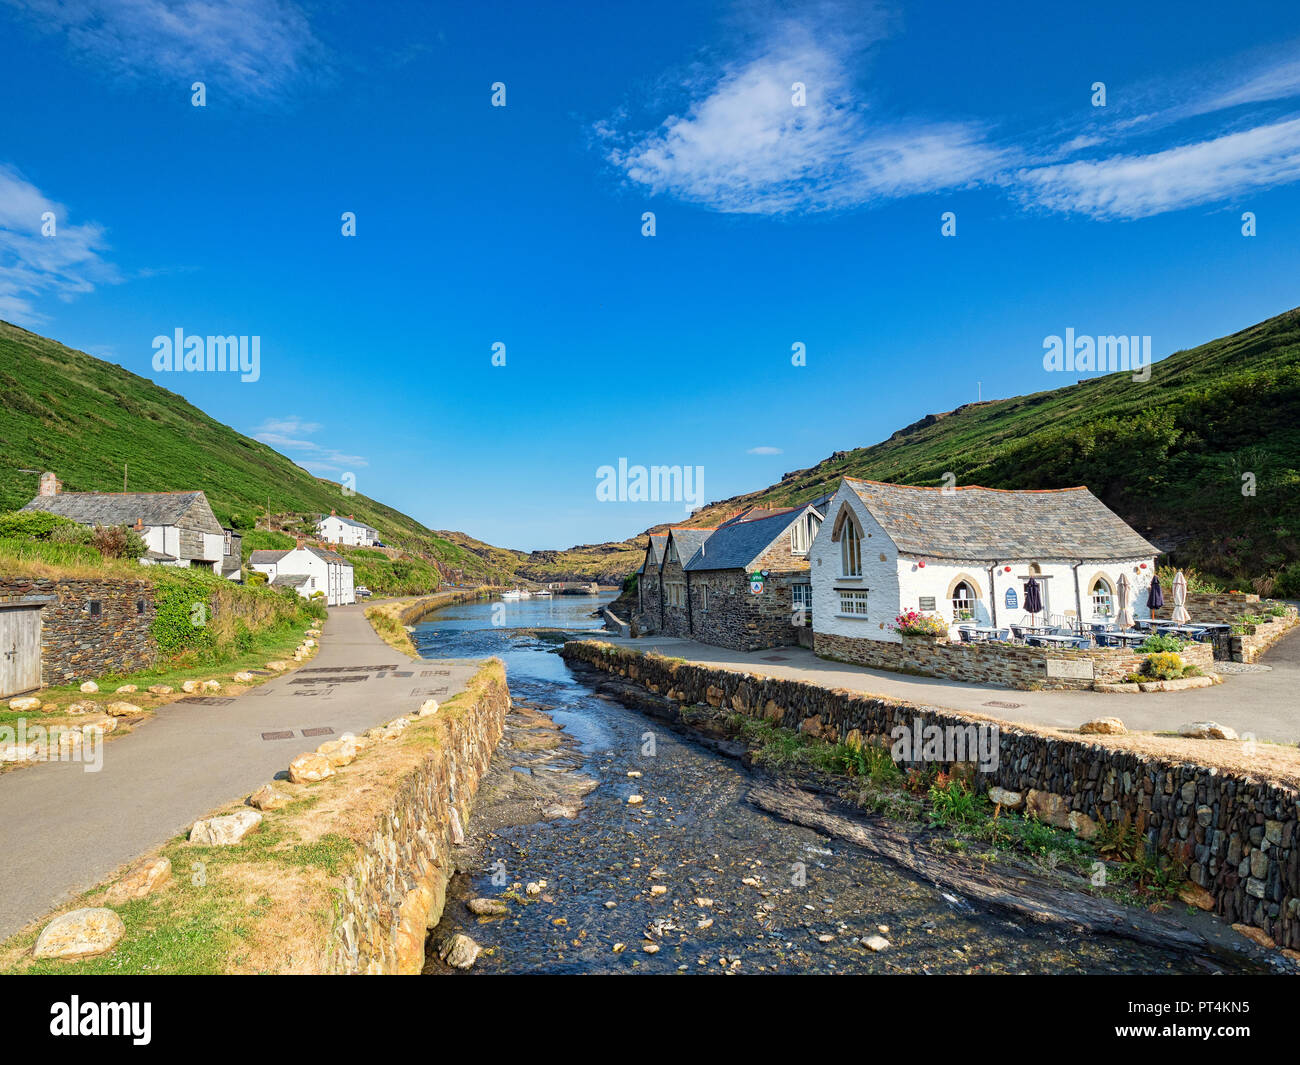 2 July 2018: Boscastle, Cornwall, UK - The coastal village with the River Valency running through the middle. Stock Photo